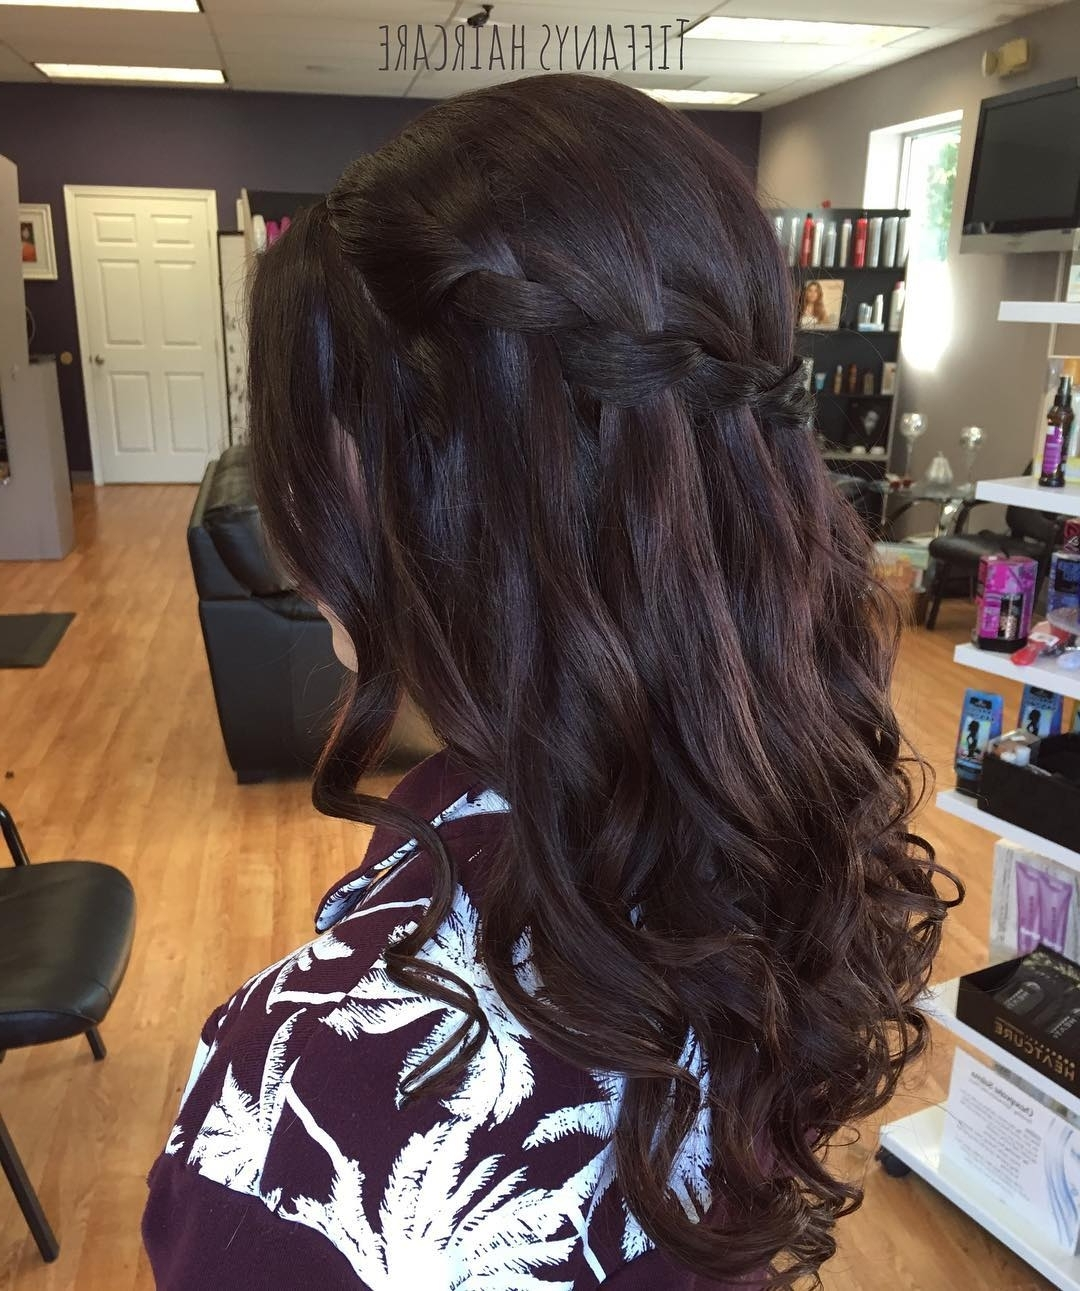 2017 Braided Hairstyles For Dark Hair Inside 40 Gorgeous Brunette Hairstyles (View 1 of 15)